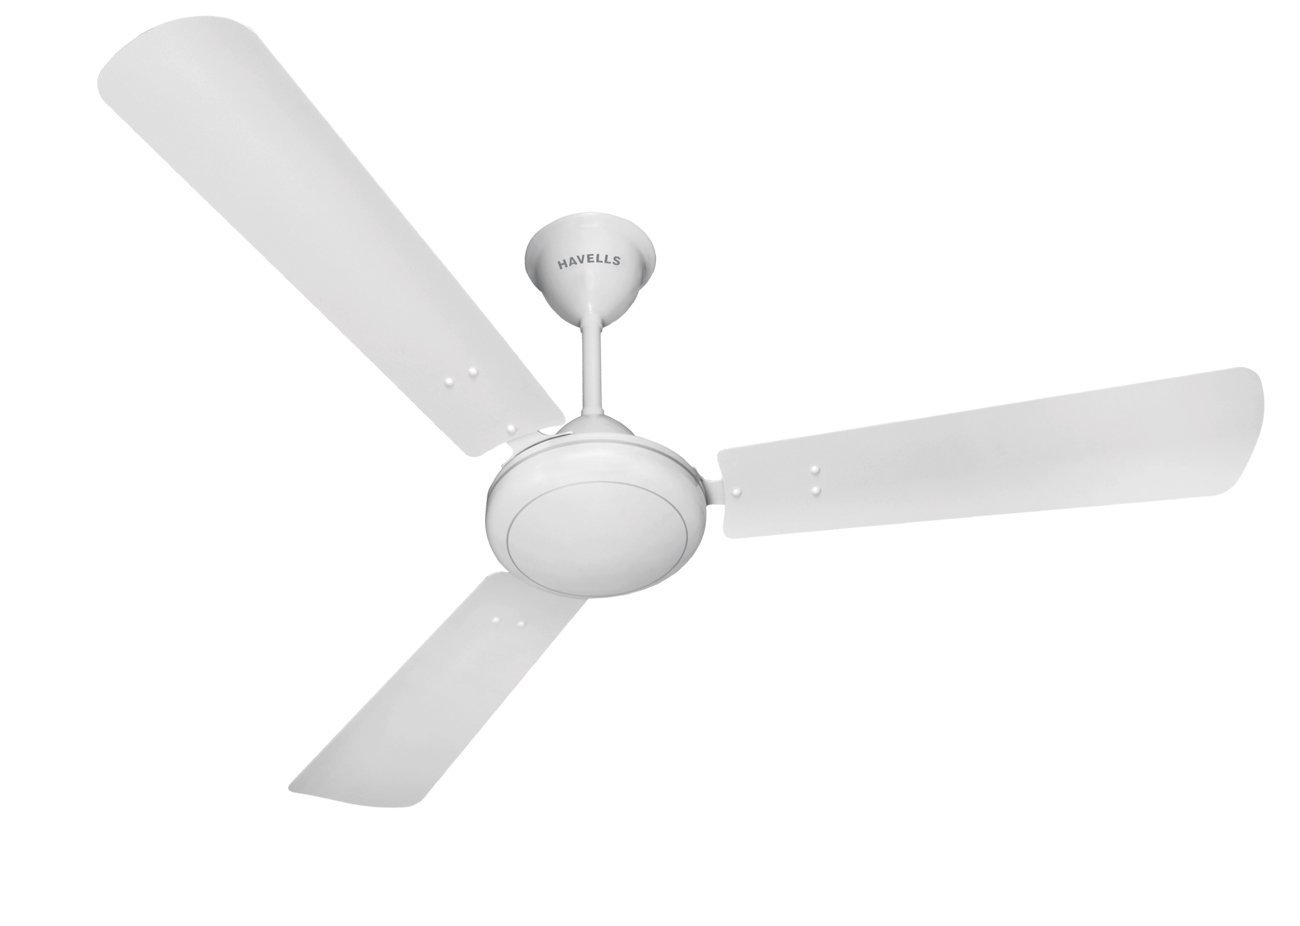 Buy havells ss 390 1050mm 68 watt metallic ceiling fan pearl buy havells ss 390 1050mm 68 watt metallic ceiling fan pearl white and silver online at low prices in india amazon mozeypictures Image collections